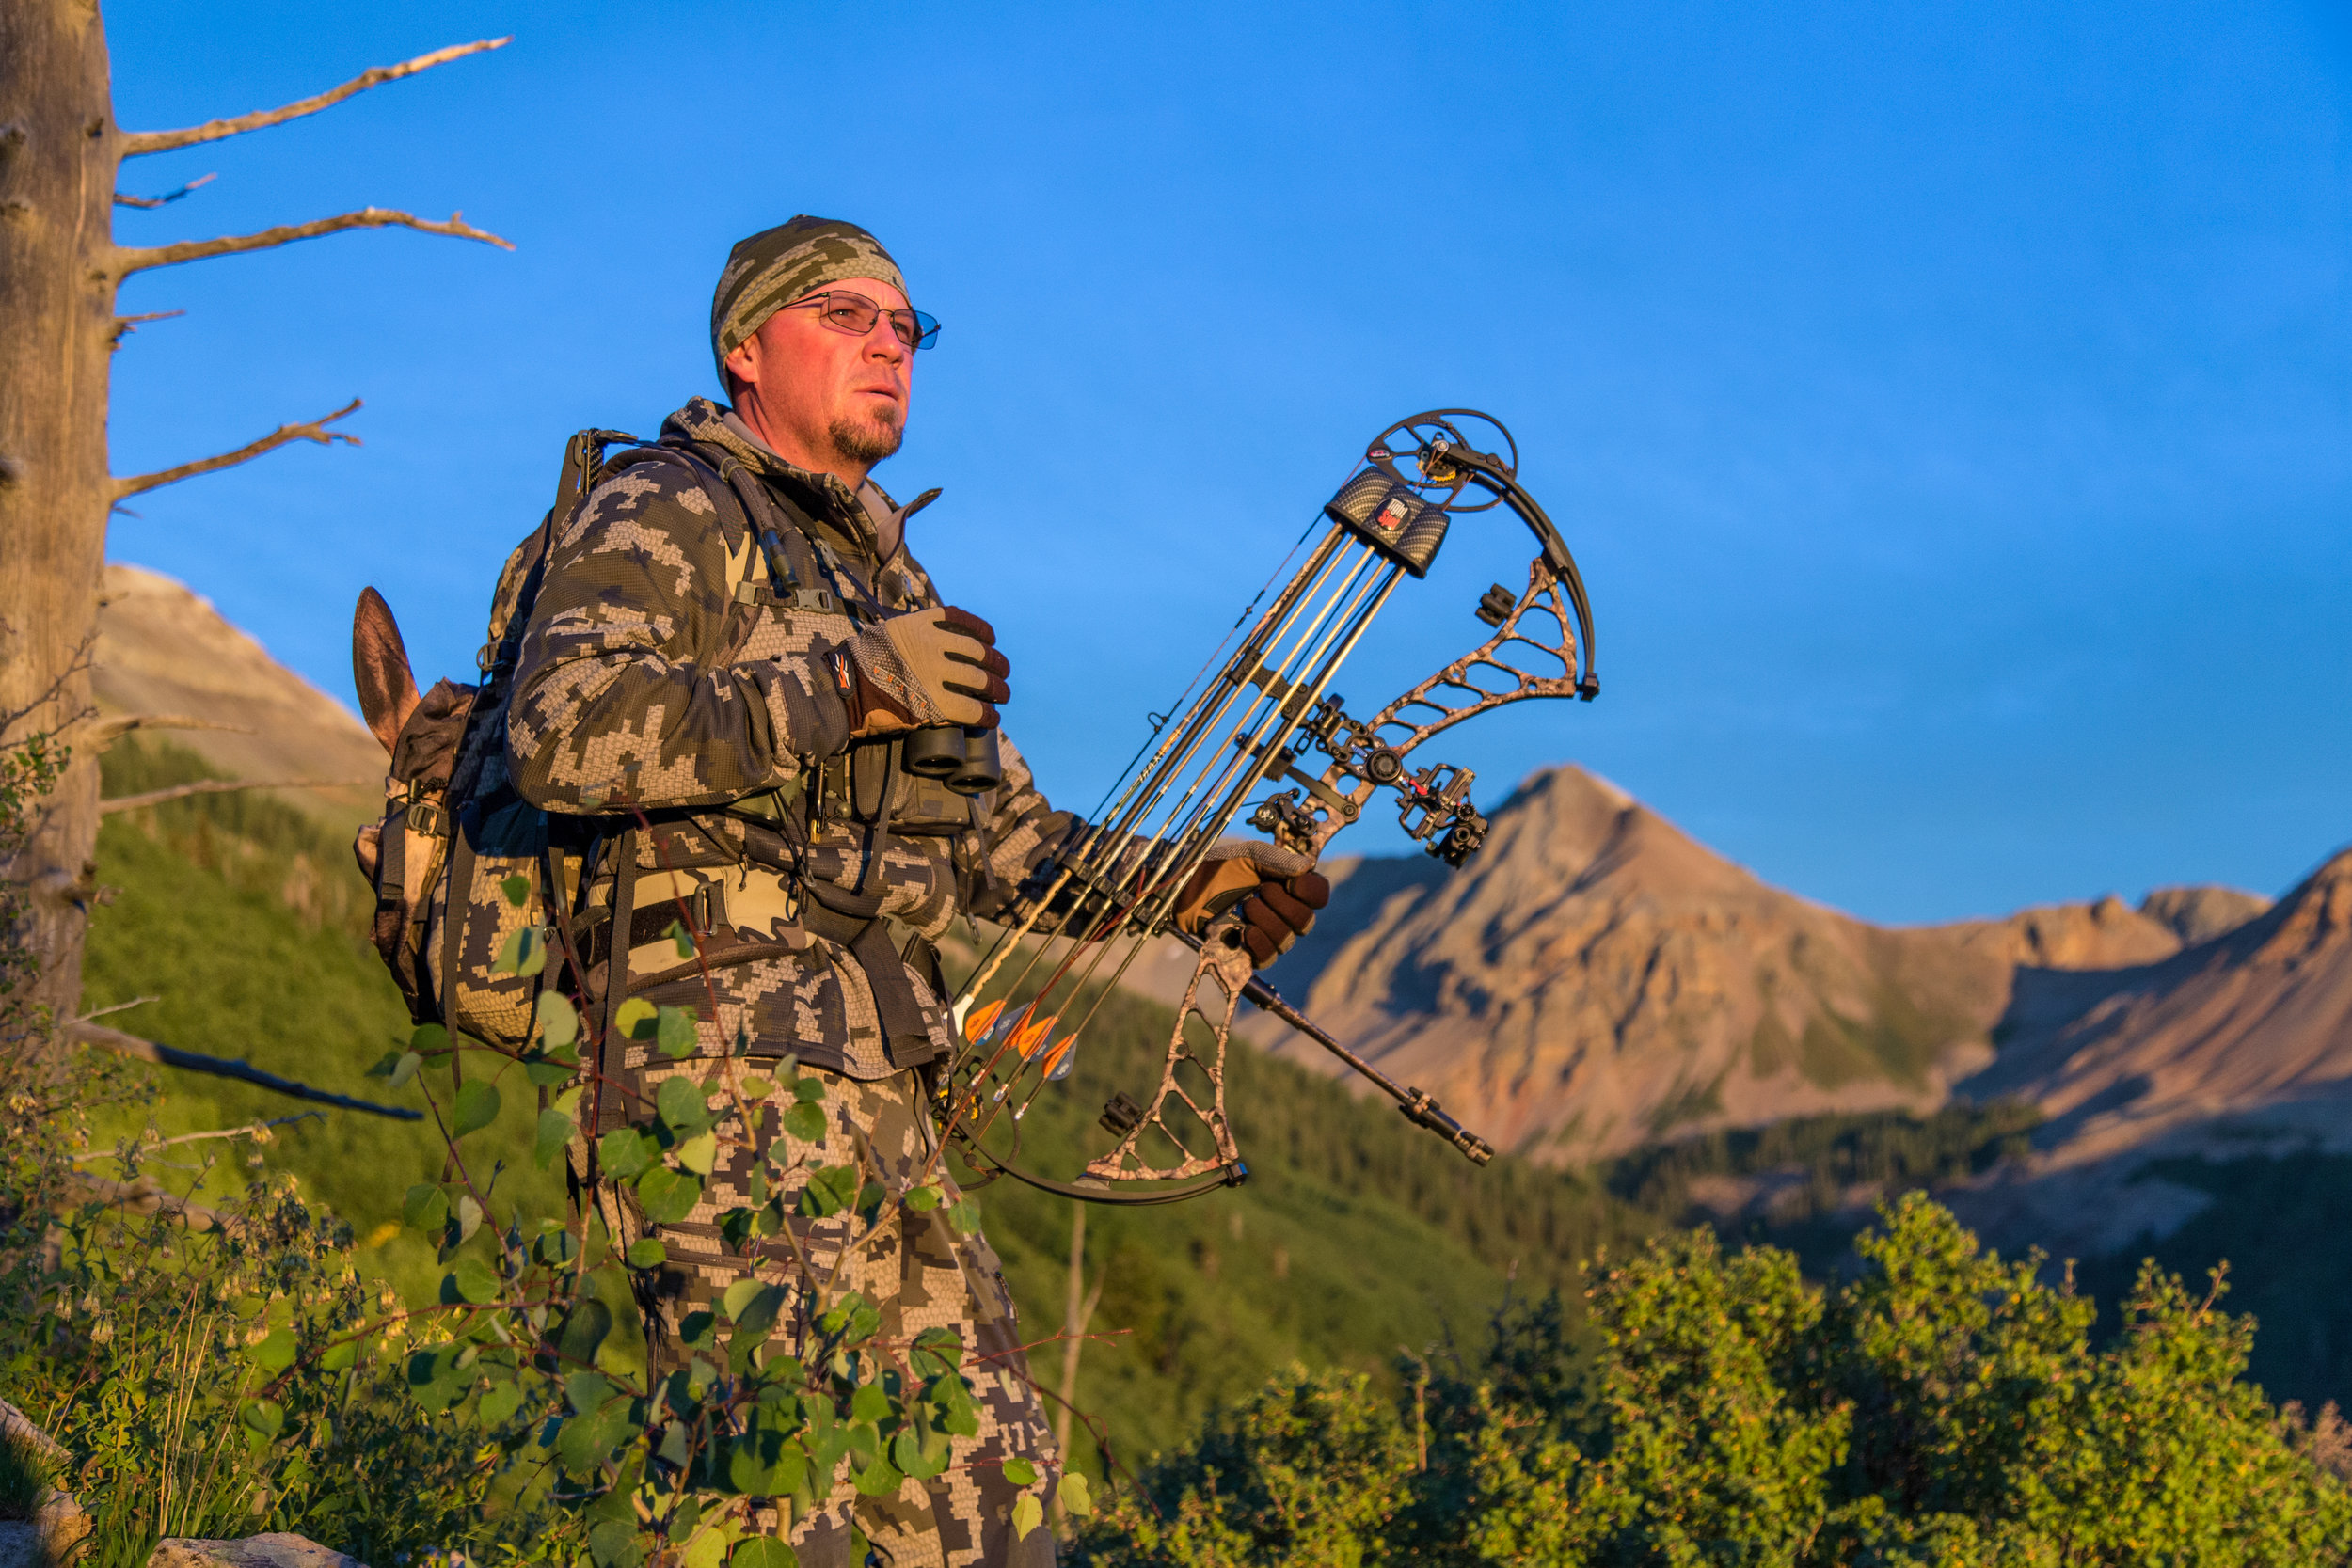 Bowhunter glassing on side of mountain